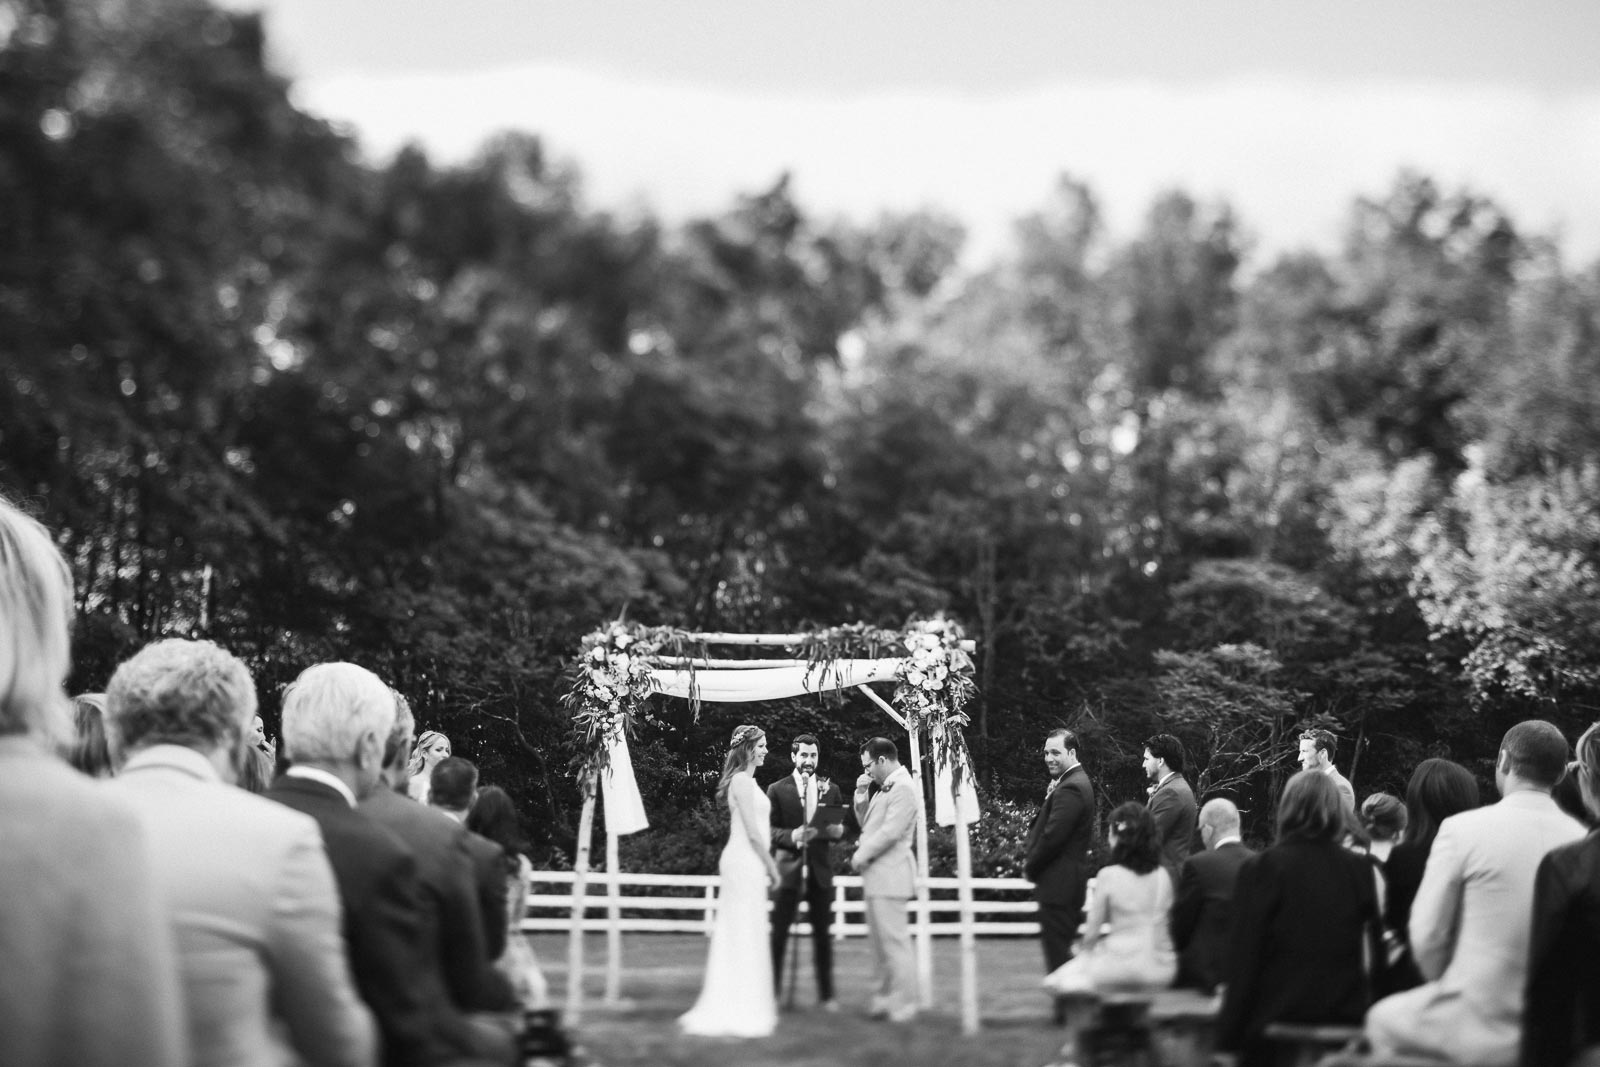 barn-at-liberty-farms-wedding-hudson-valley-alekseyk-photography-25.jpg